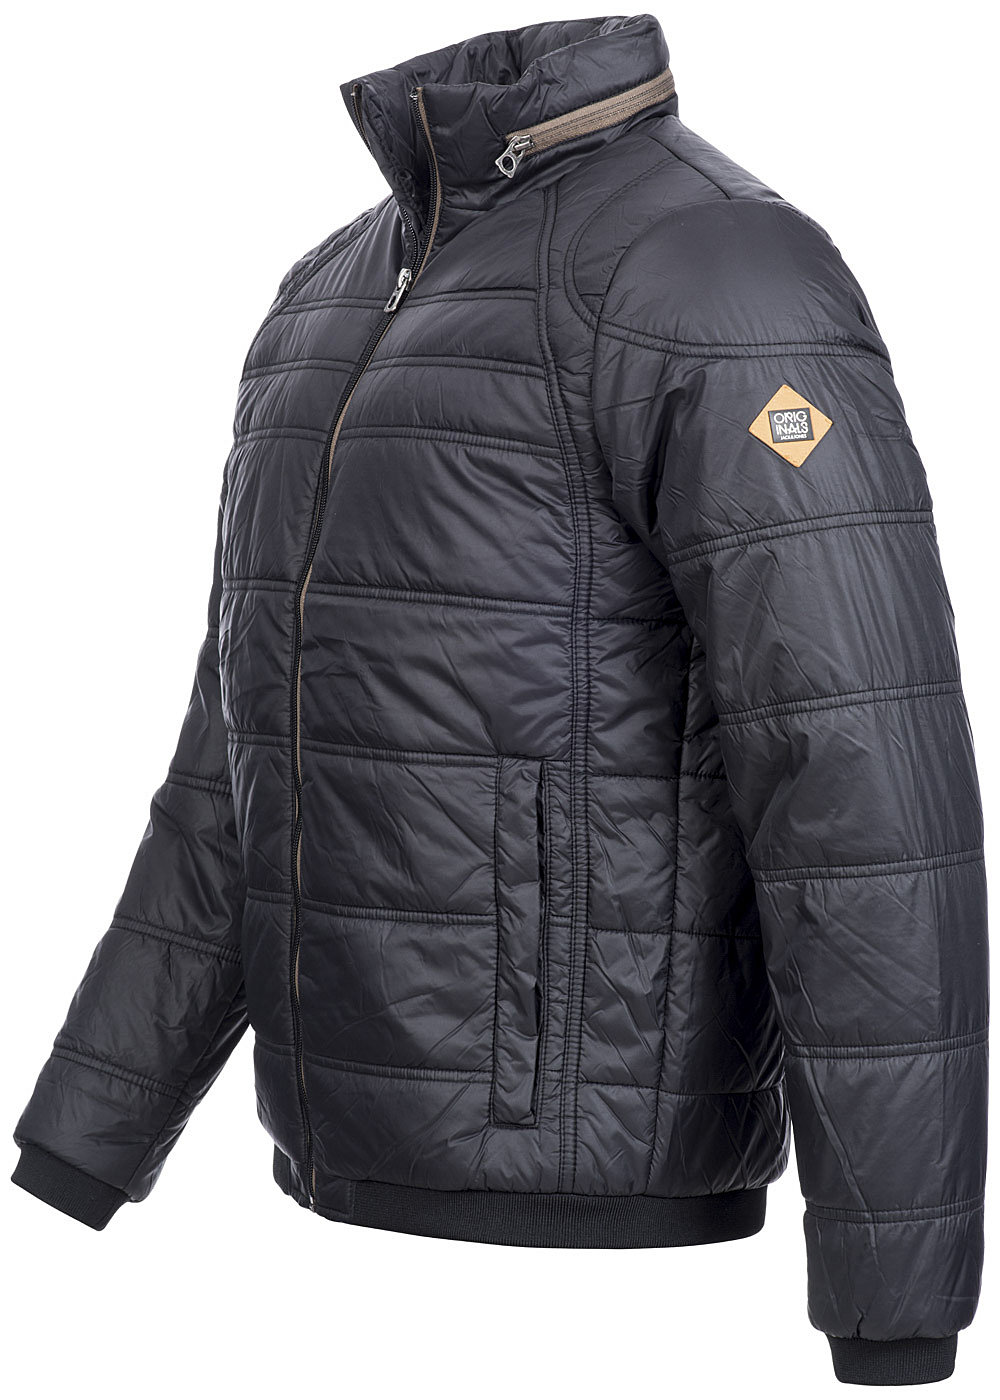 Jack and jones winterjacke schwarz